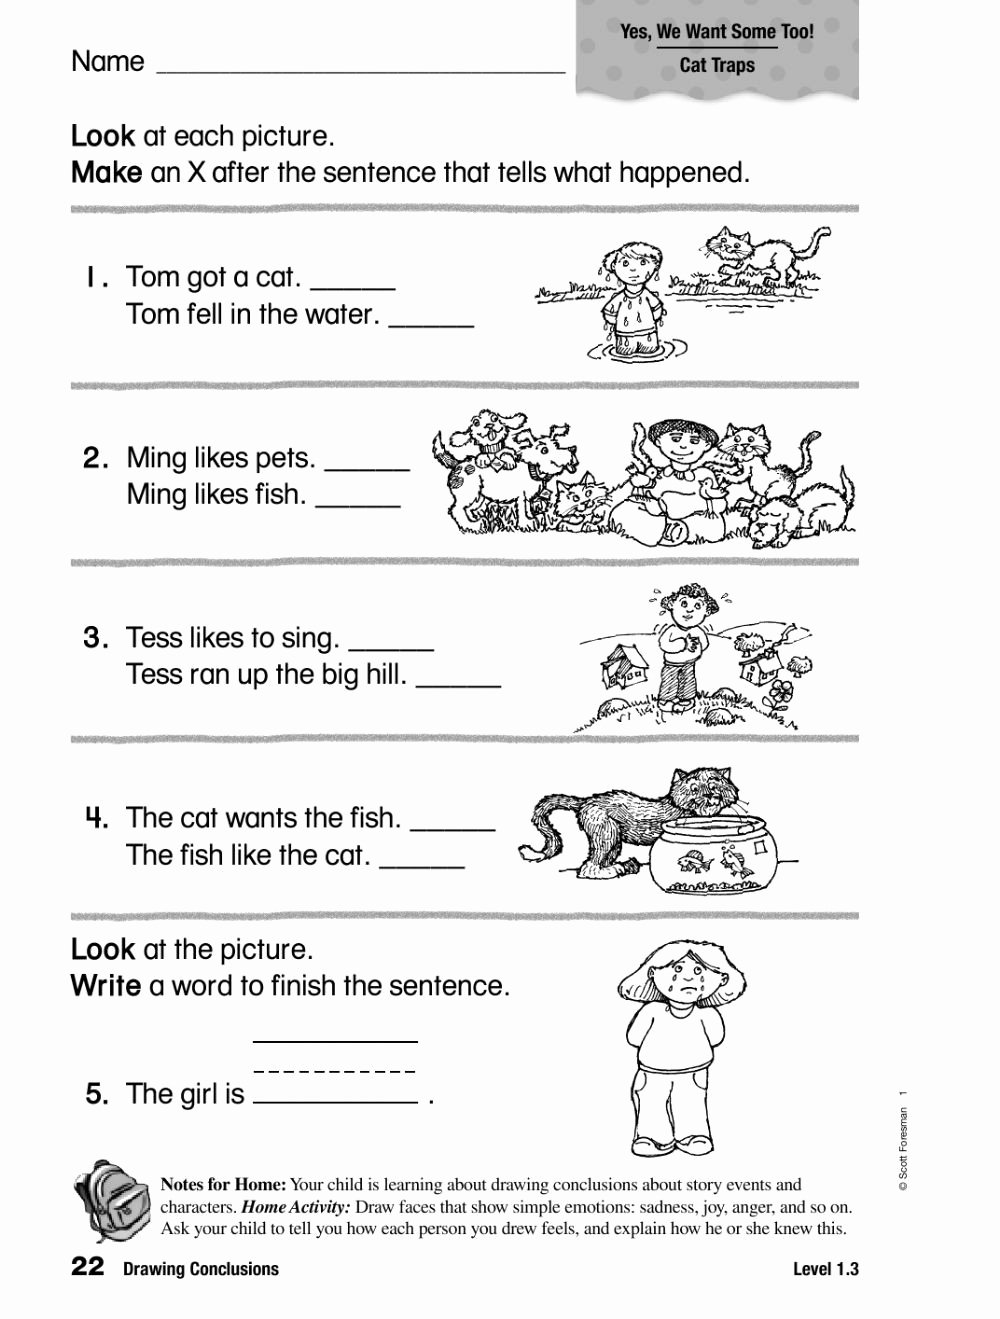 Drawing Conclusions Worksheets 4th Grade Inspirational Drawing Conclusion Worksheets 3rd Grade